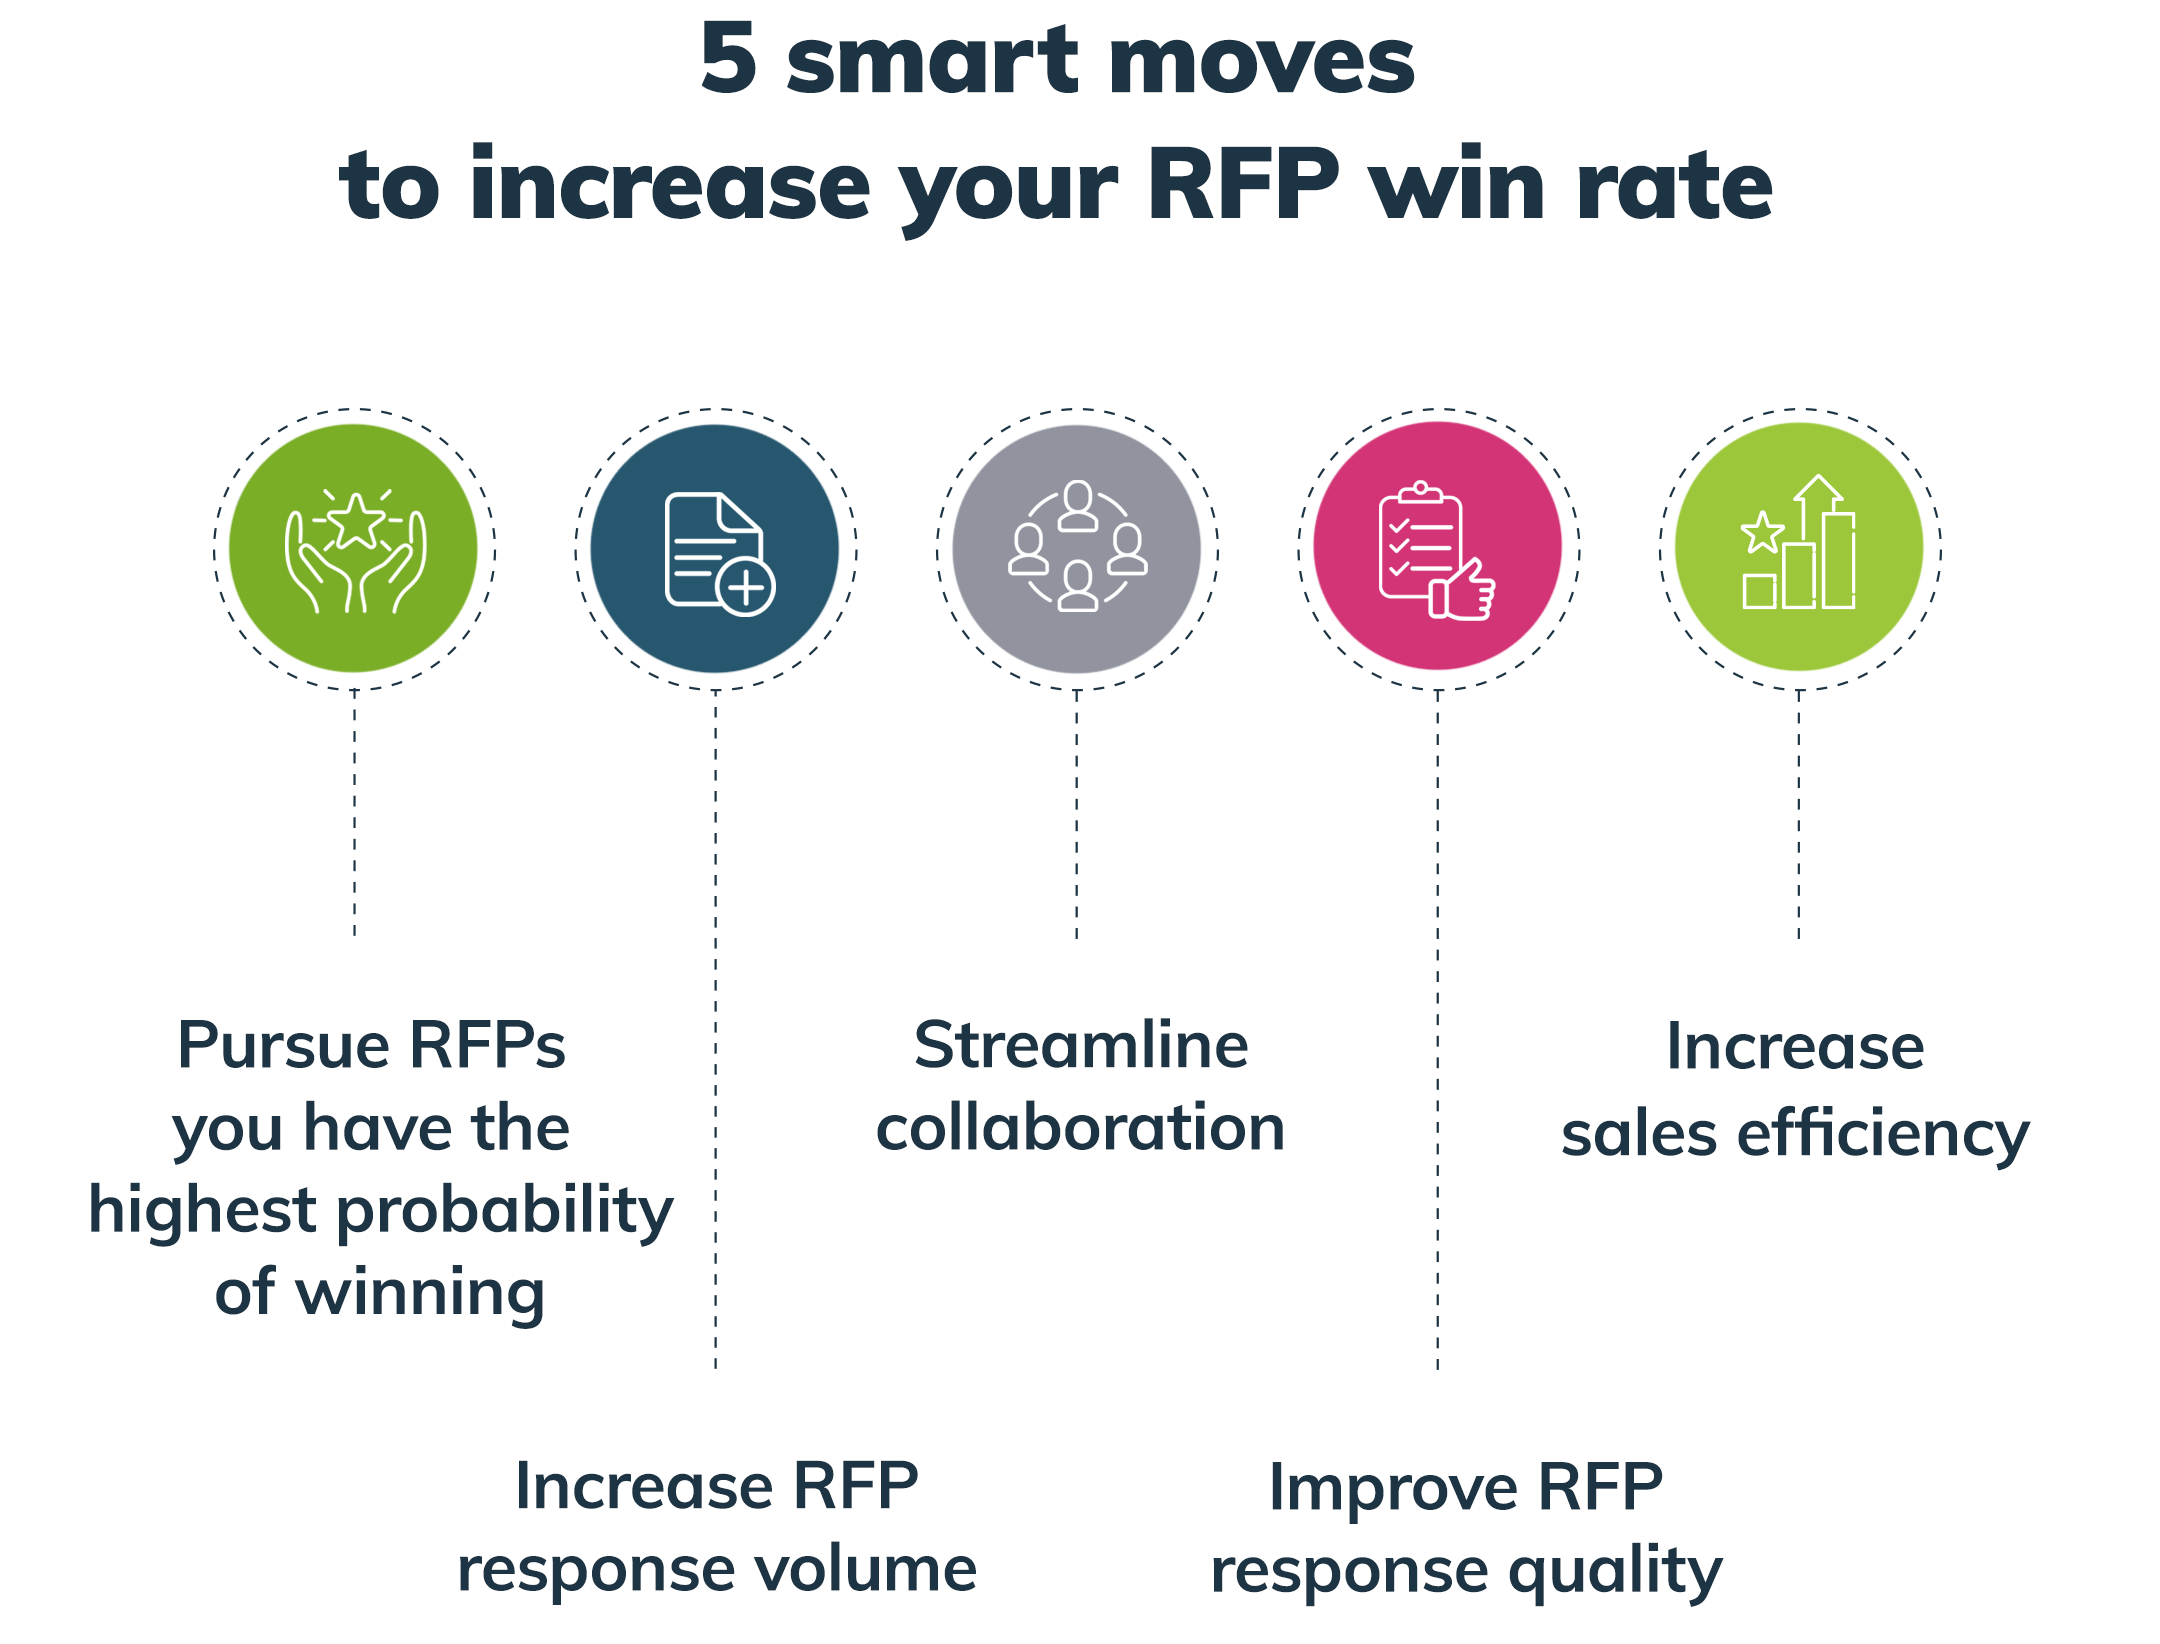 5 smart moves to increase your RFP win rate